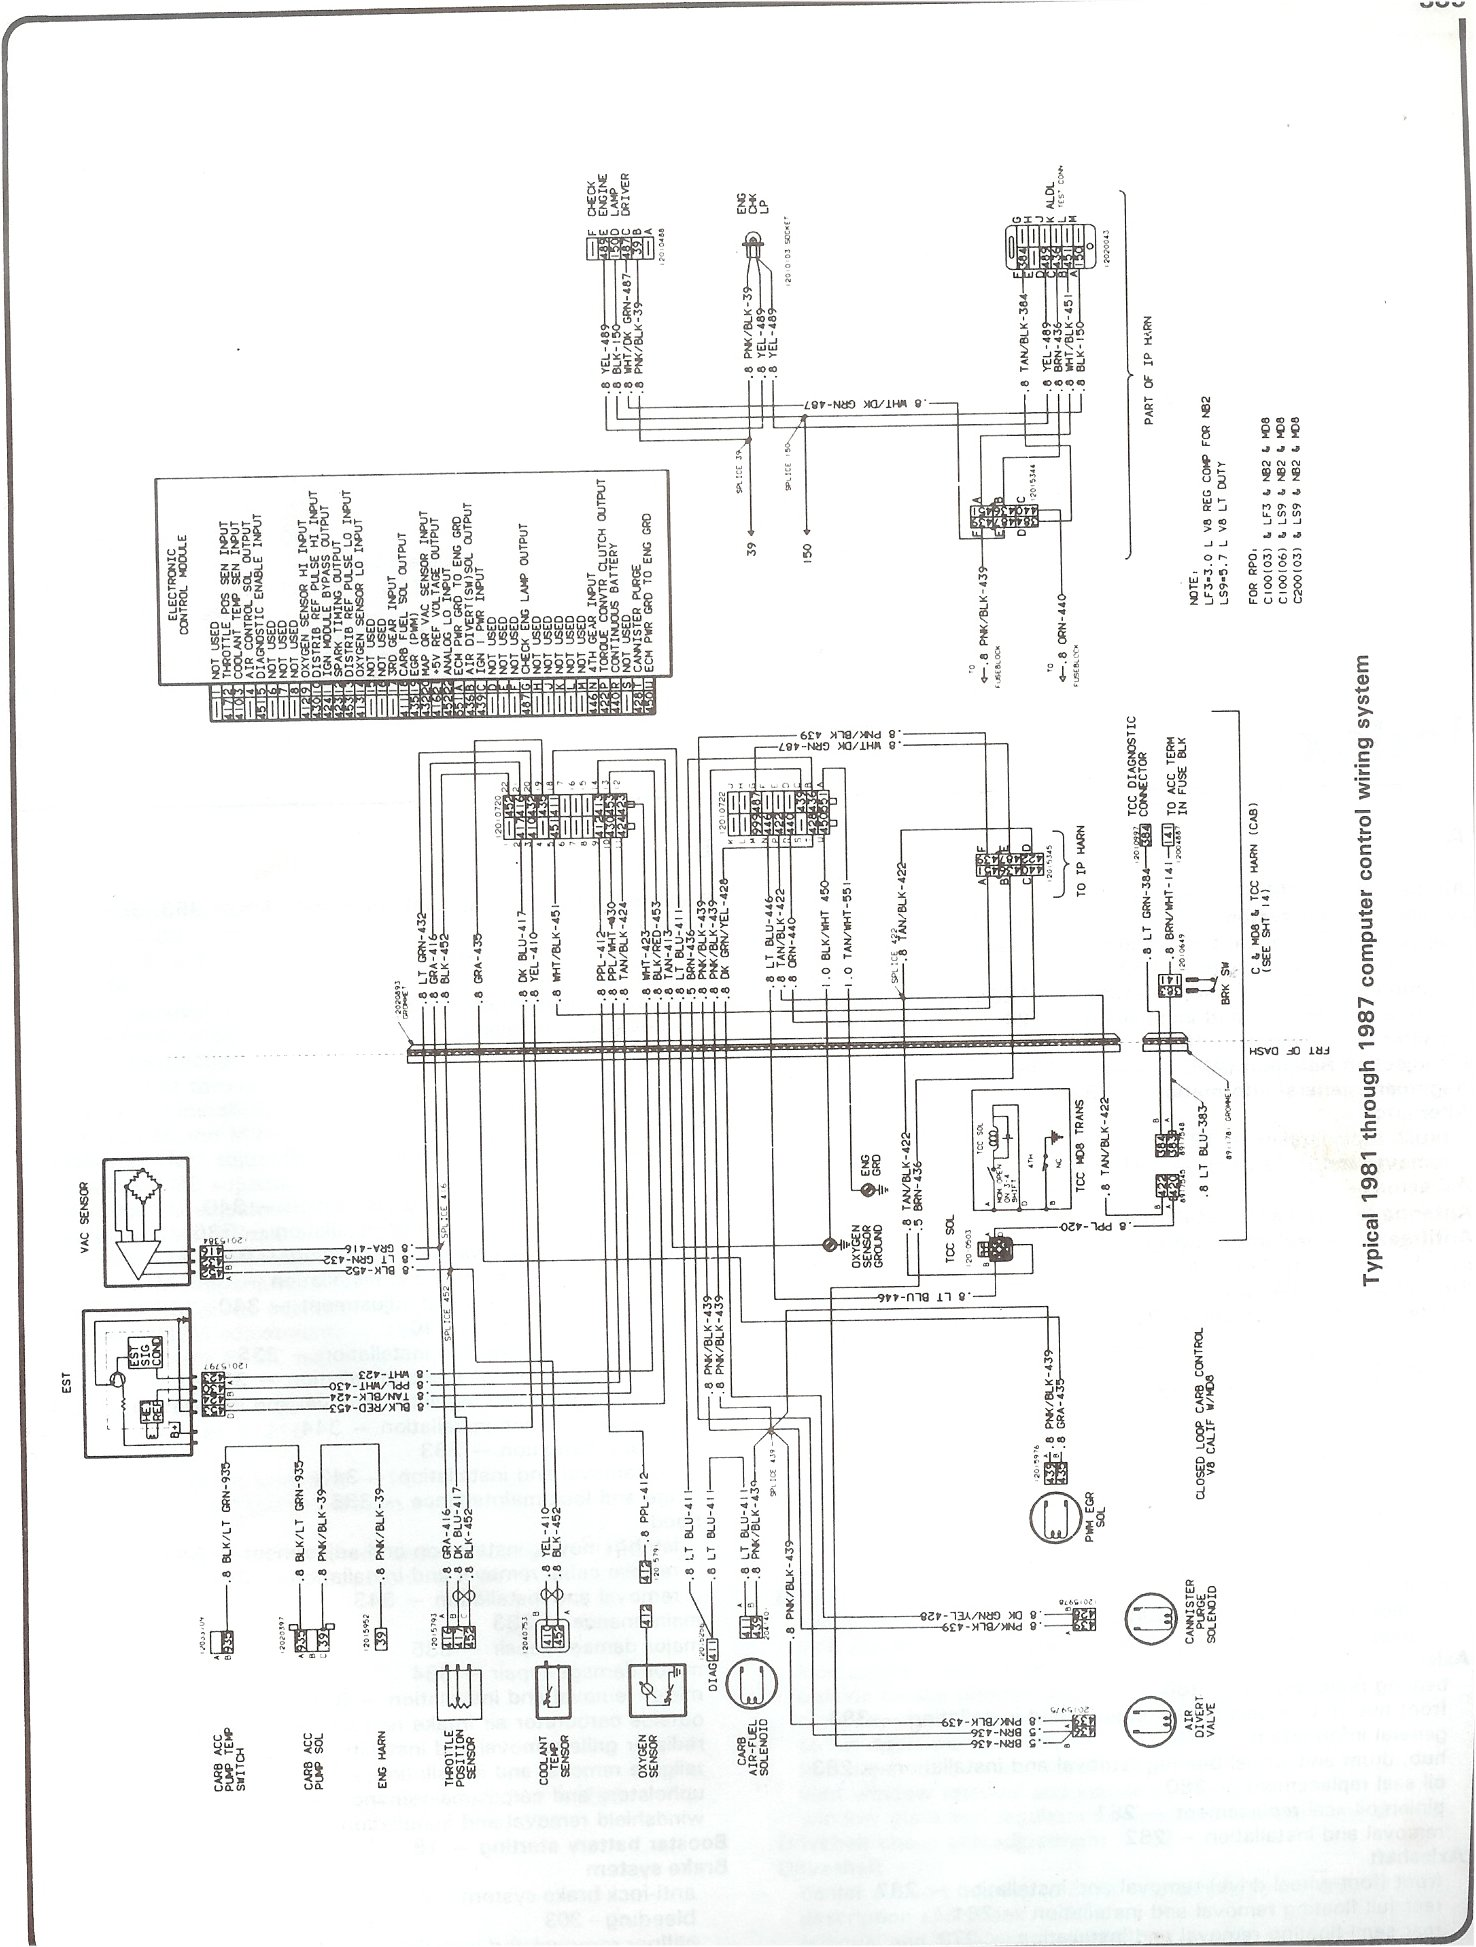 81 87_computer_control_wiring complete 73 87 wiring diagrams 1975 c10 wiring diagram at gsmx.co